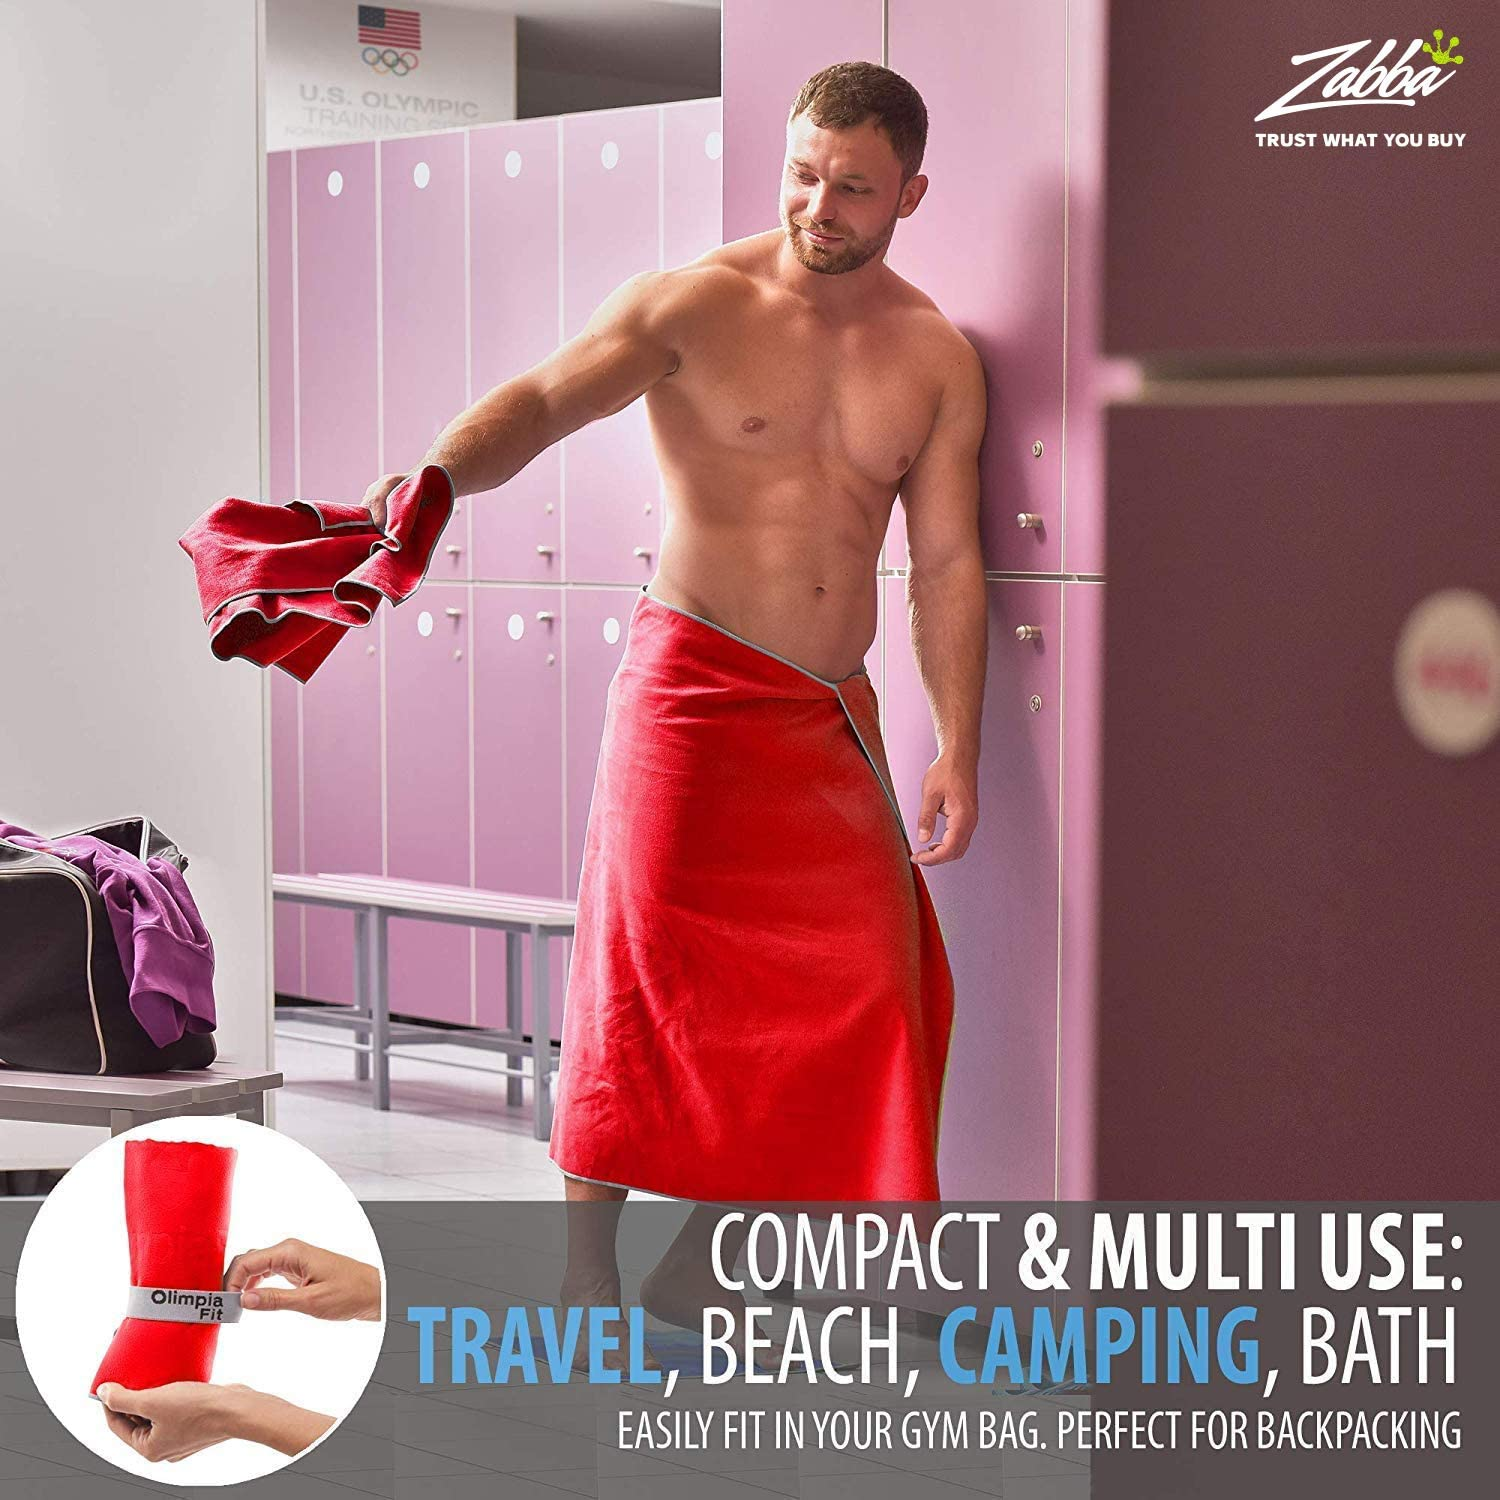 Yoga Gym Lightweight Compact Soft Beach 3 Size Pack Sports Travel Towel w// Bag Backpacking - Camping Quick Dry OlimpiaFit Microfiber Towels